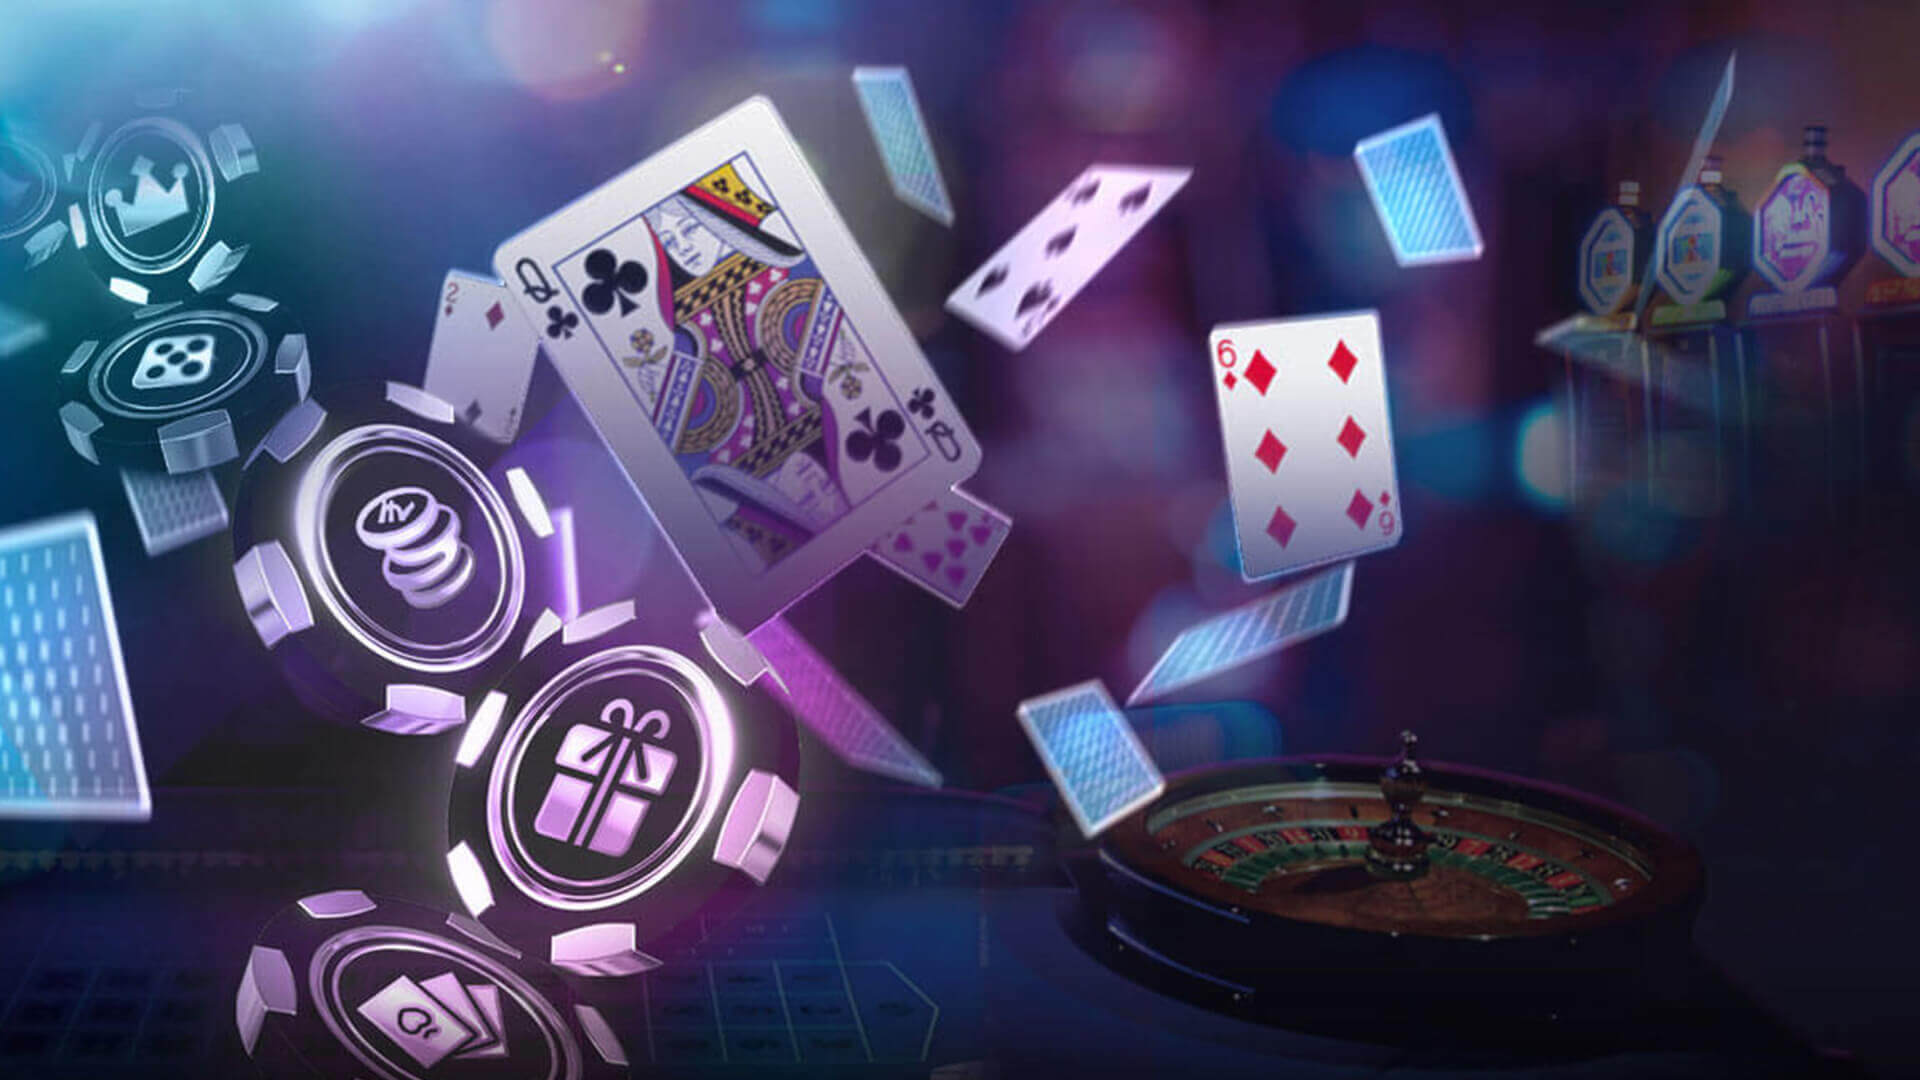 Over Half A Million Punters Block Themselves From Online Gambling | Love Andover